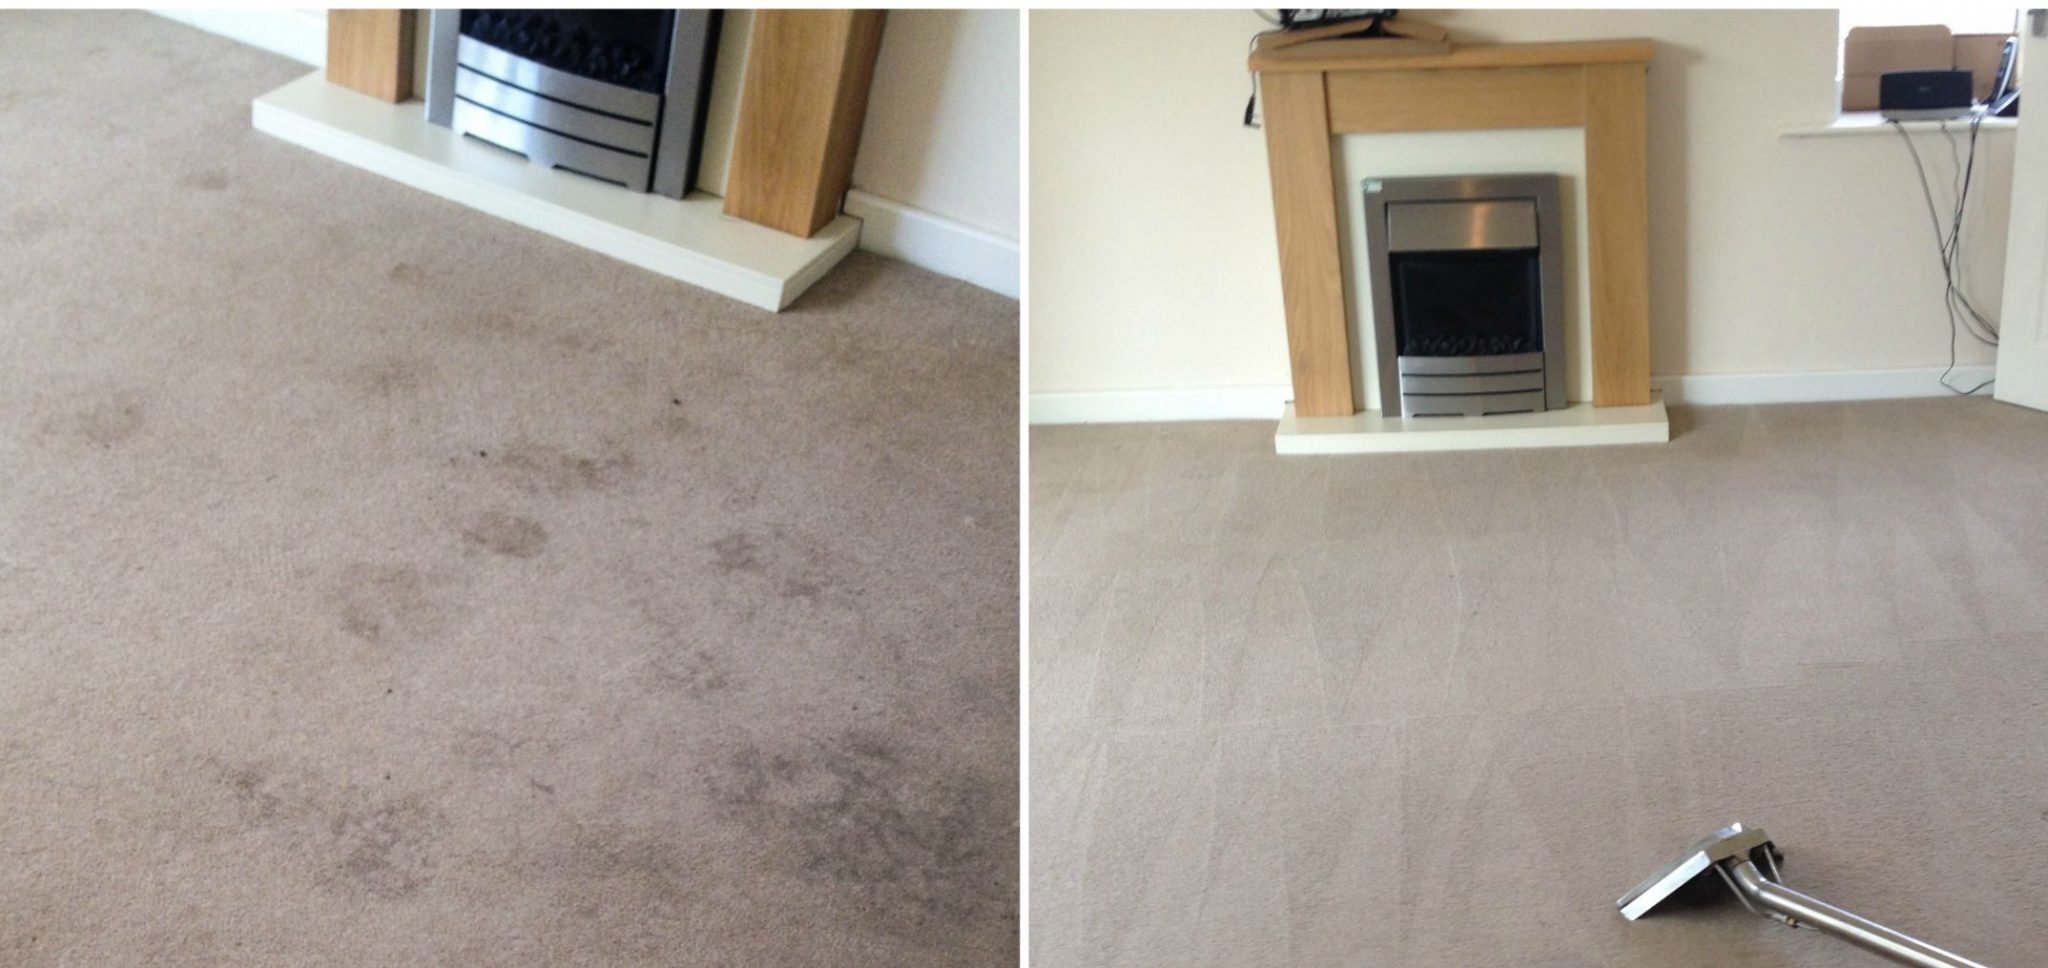 Professional carpet cleaning service by local expert cleaning